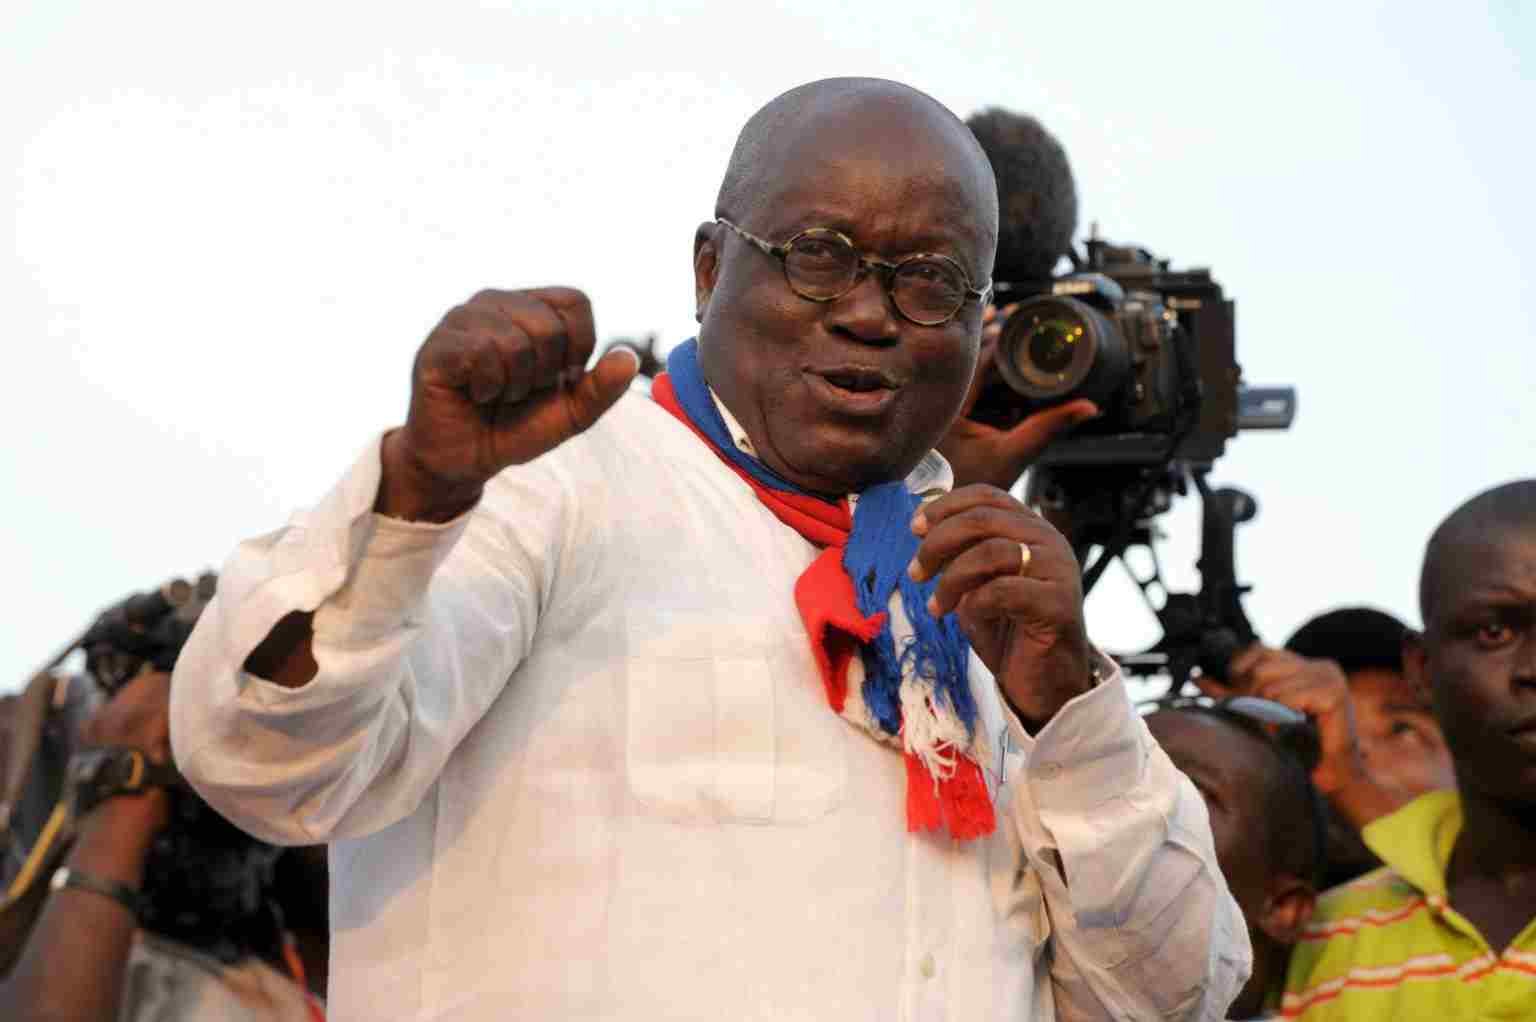 Ghana: Supreme Court dismisses Mahama's petition, upholds Akufo-Addo's Election